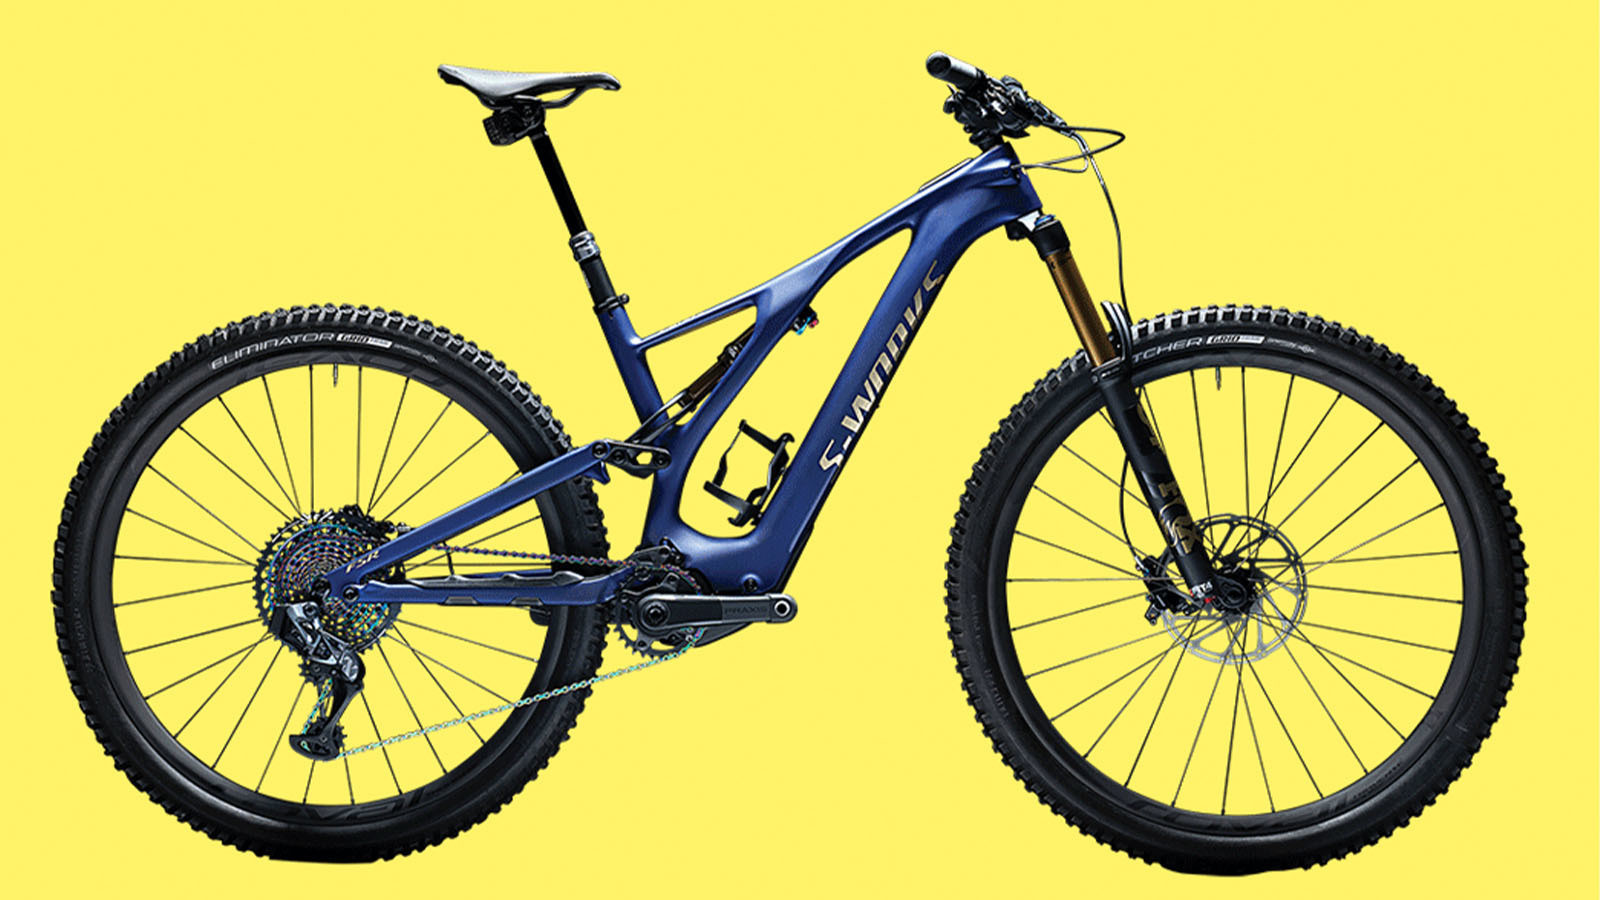 Fundraise for Trails and a Chance to Win a Specialized Levo